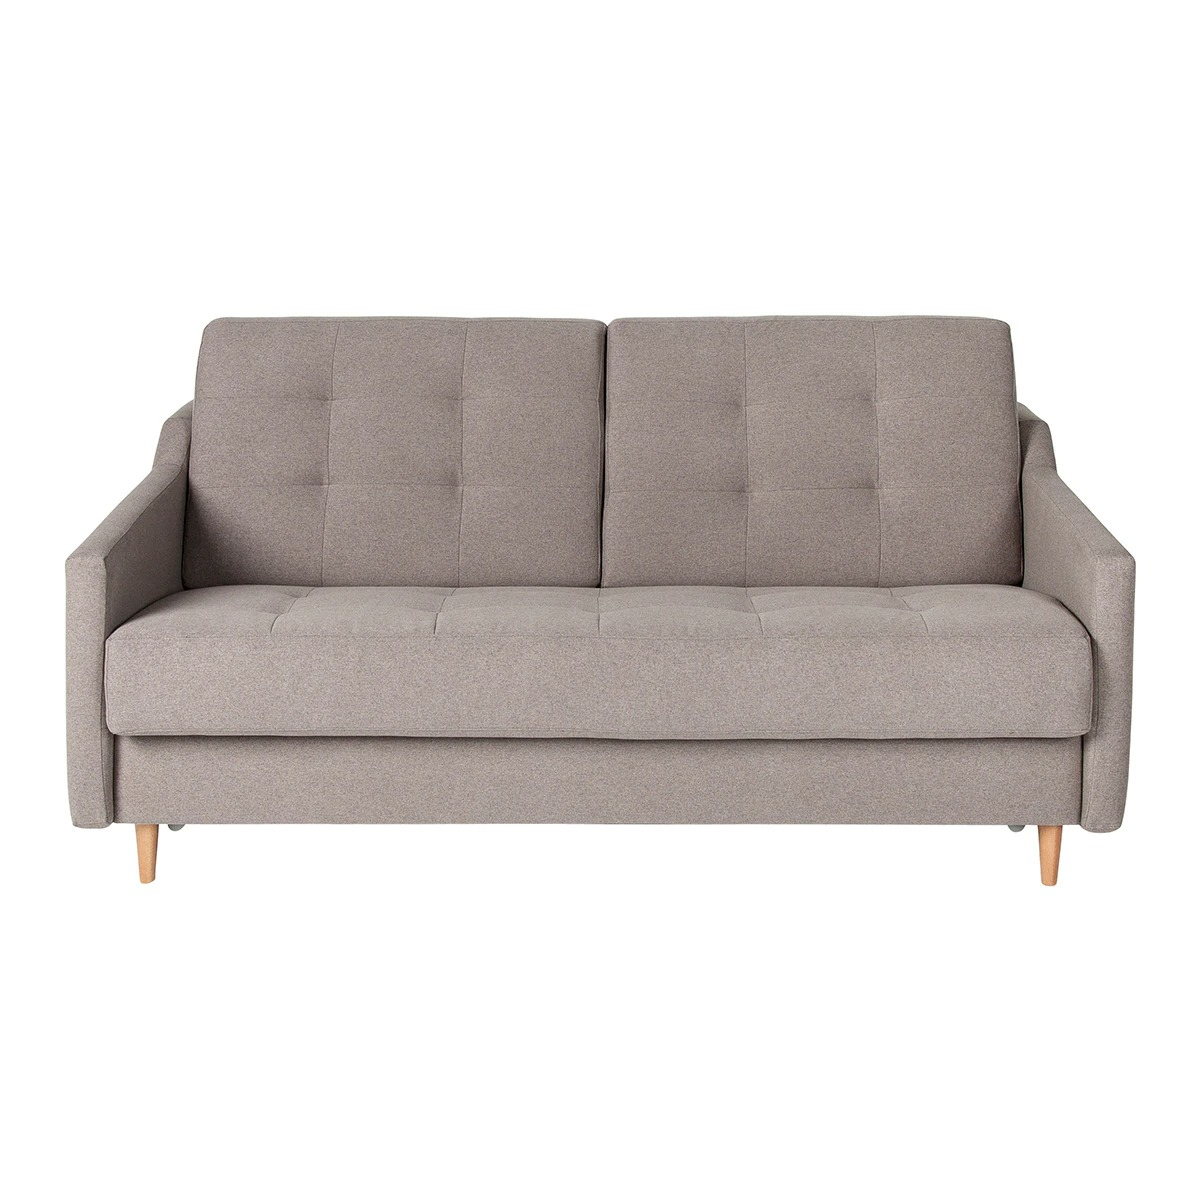 Neris 3 Seater Upholstered Sofa Bed